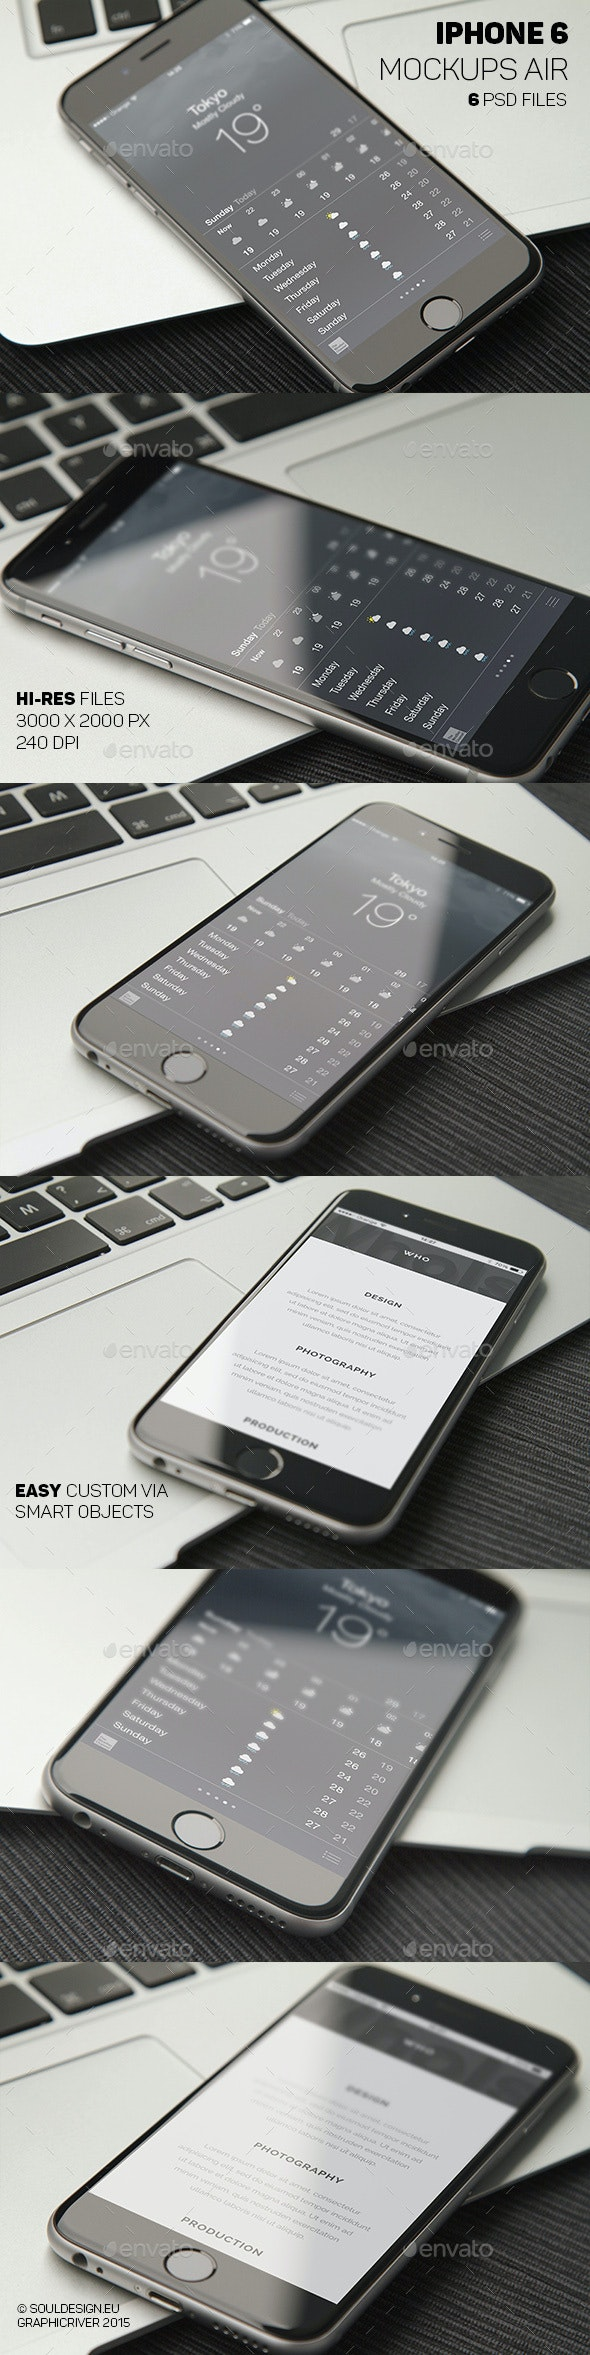 Phone 6 Closeup Mockups Air - Mobile Displays